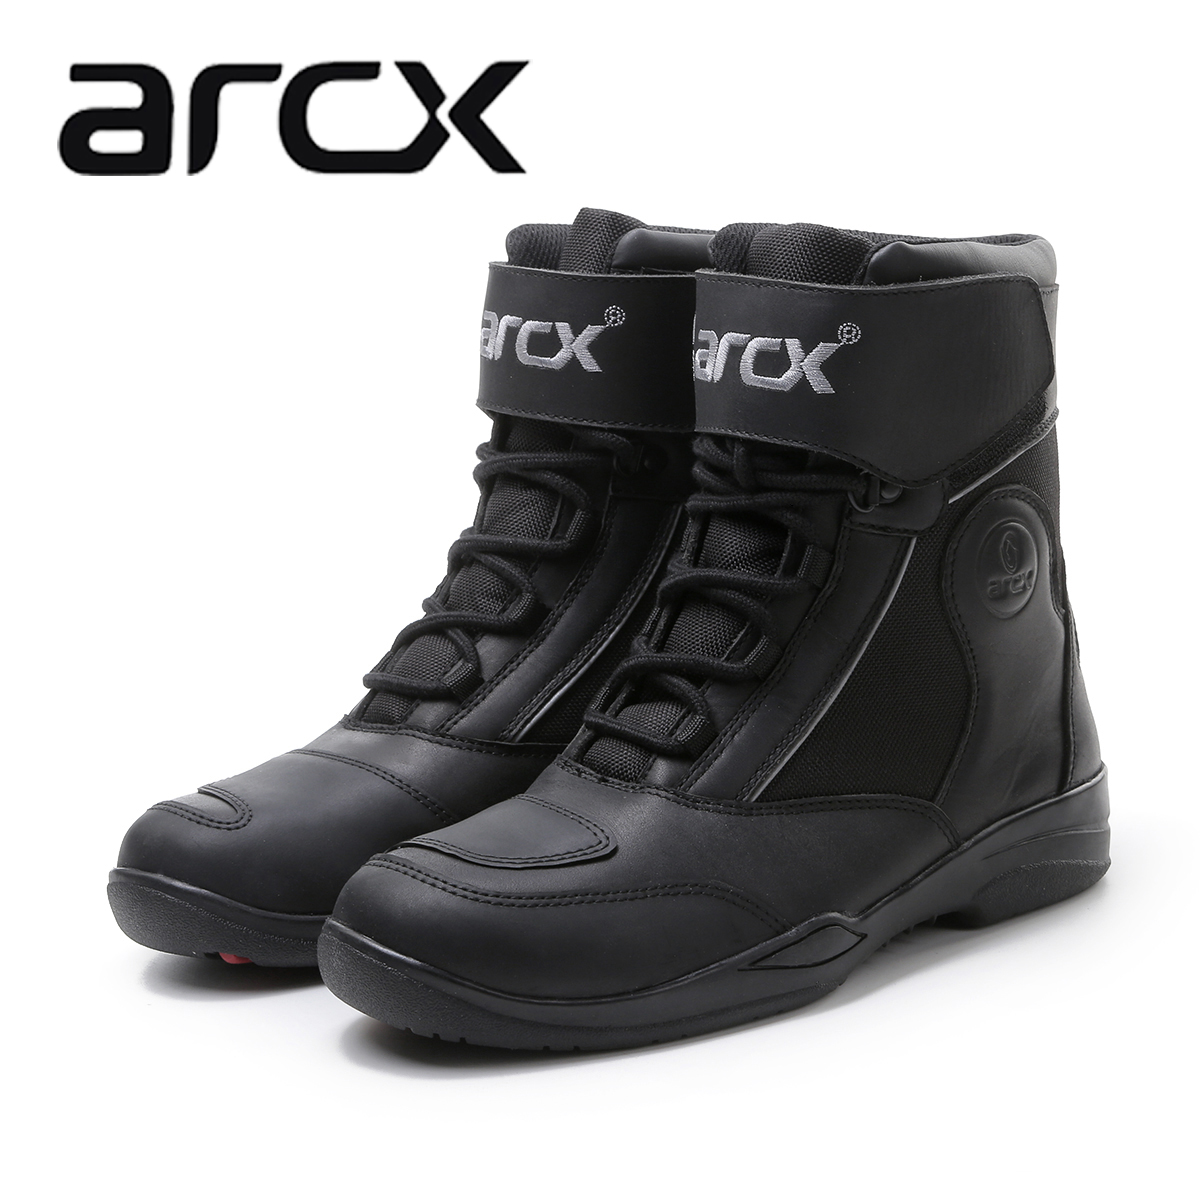 Arcx leather outdoor motorcycle shoes wrestling riding shoes racing shoes in the locomotive shoes wrestling shoes